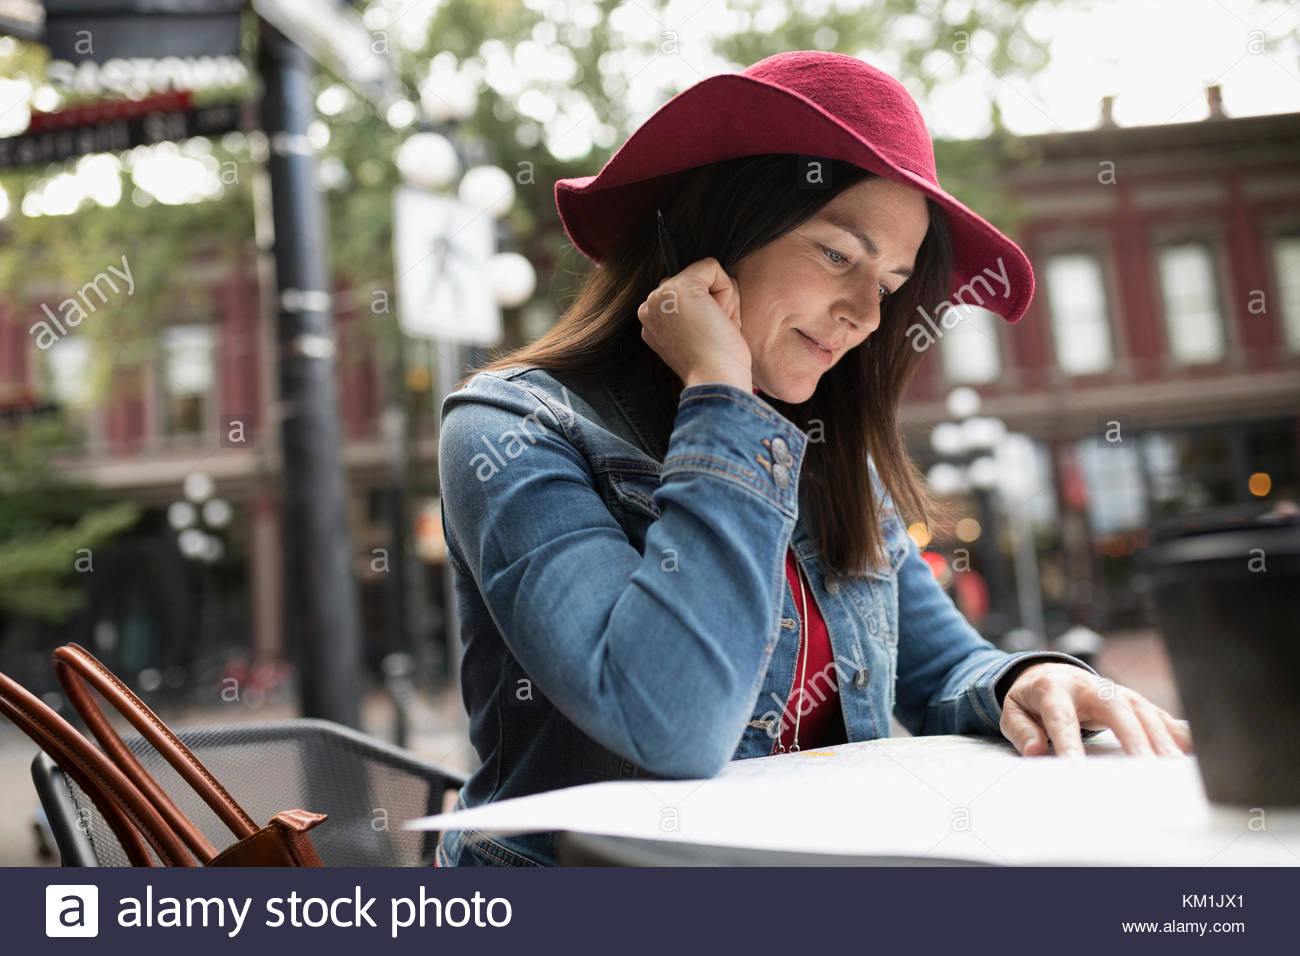 Mature woman in hat looking at map at urban sidewalk cafe - Stock Image